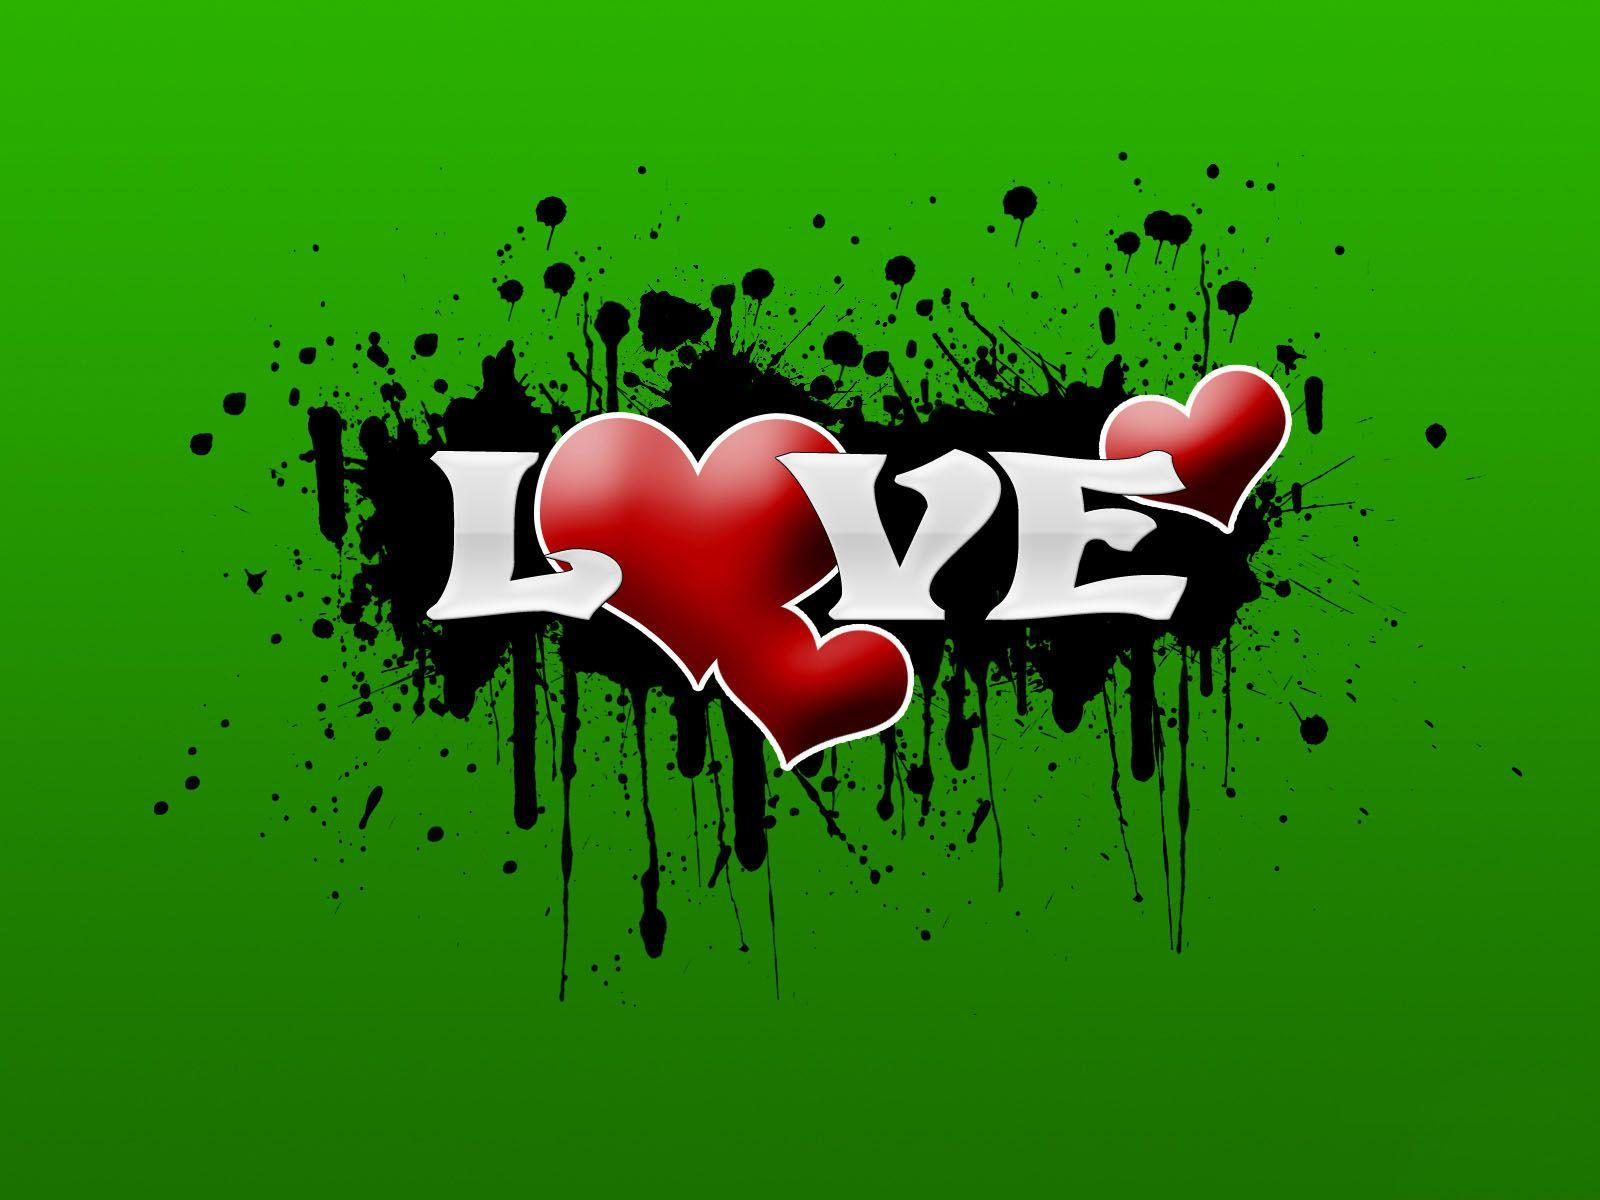 Gm Wallpaper In Love : Love 3D Wallpapers - Wallpaper cave